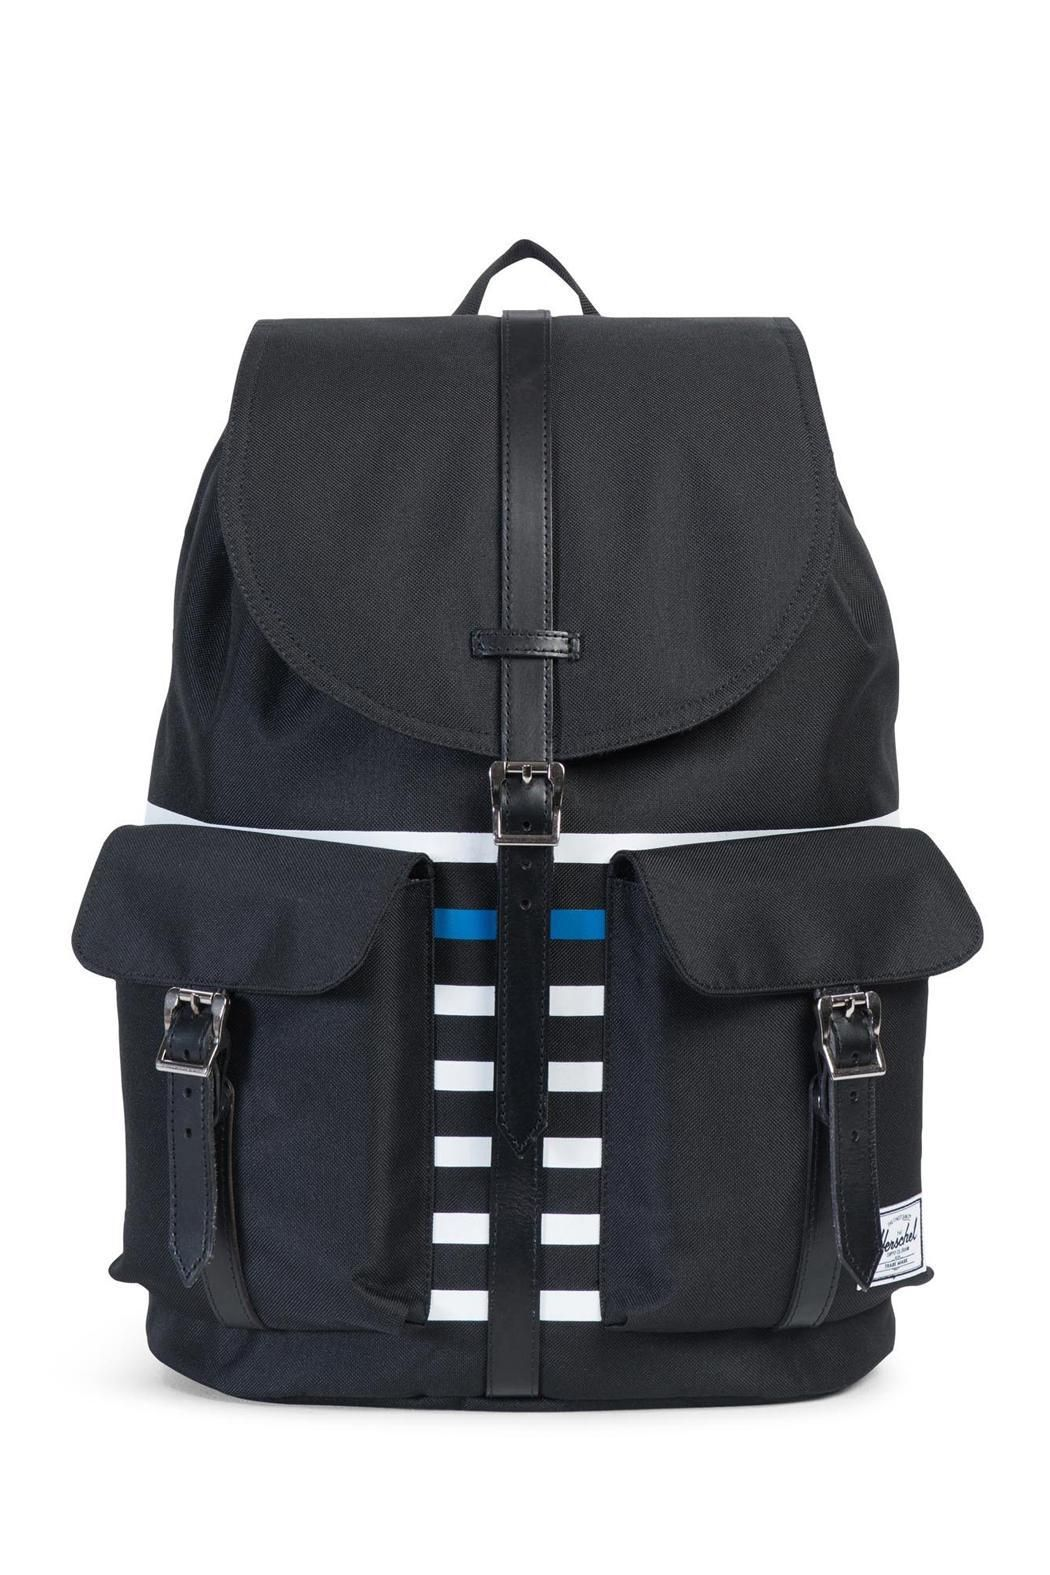 Sac à dos Herschel Heritage Offset Black Offset Stripe/Black Veggie Tan Leather noir WrCcNXd